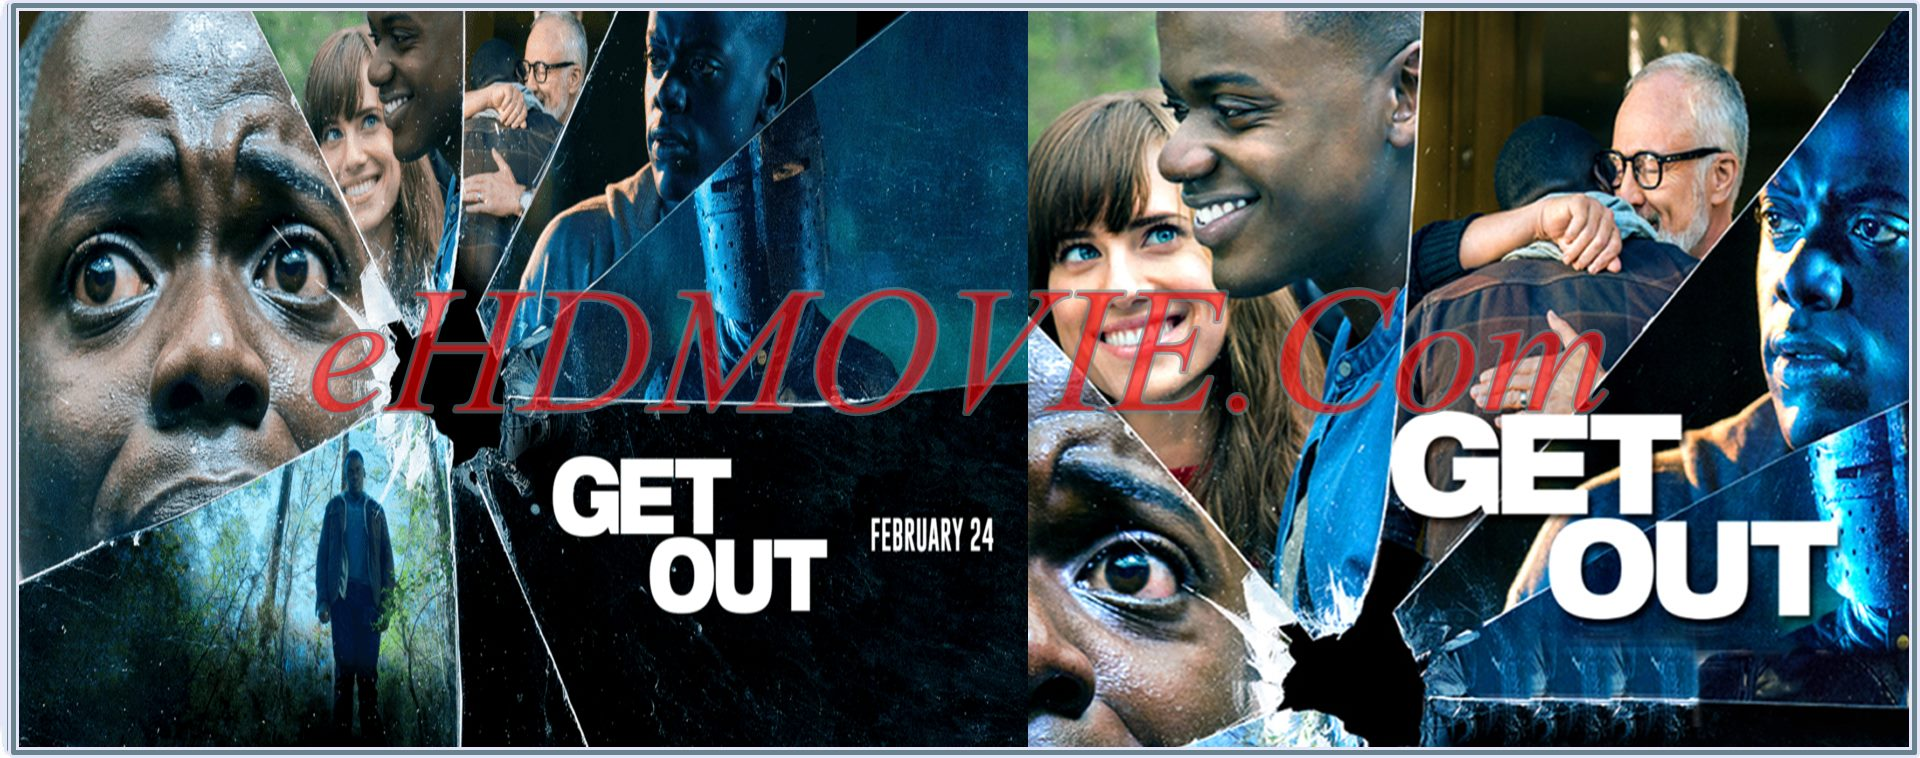 Get Out 2017 Full Movie English 720p - 480p ORG BRRip 300MB - 850MB ESubs Free Download